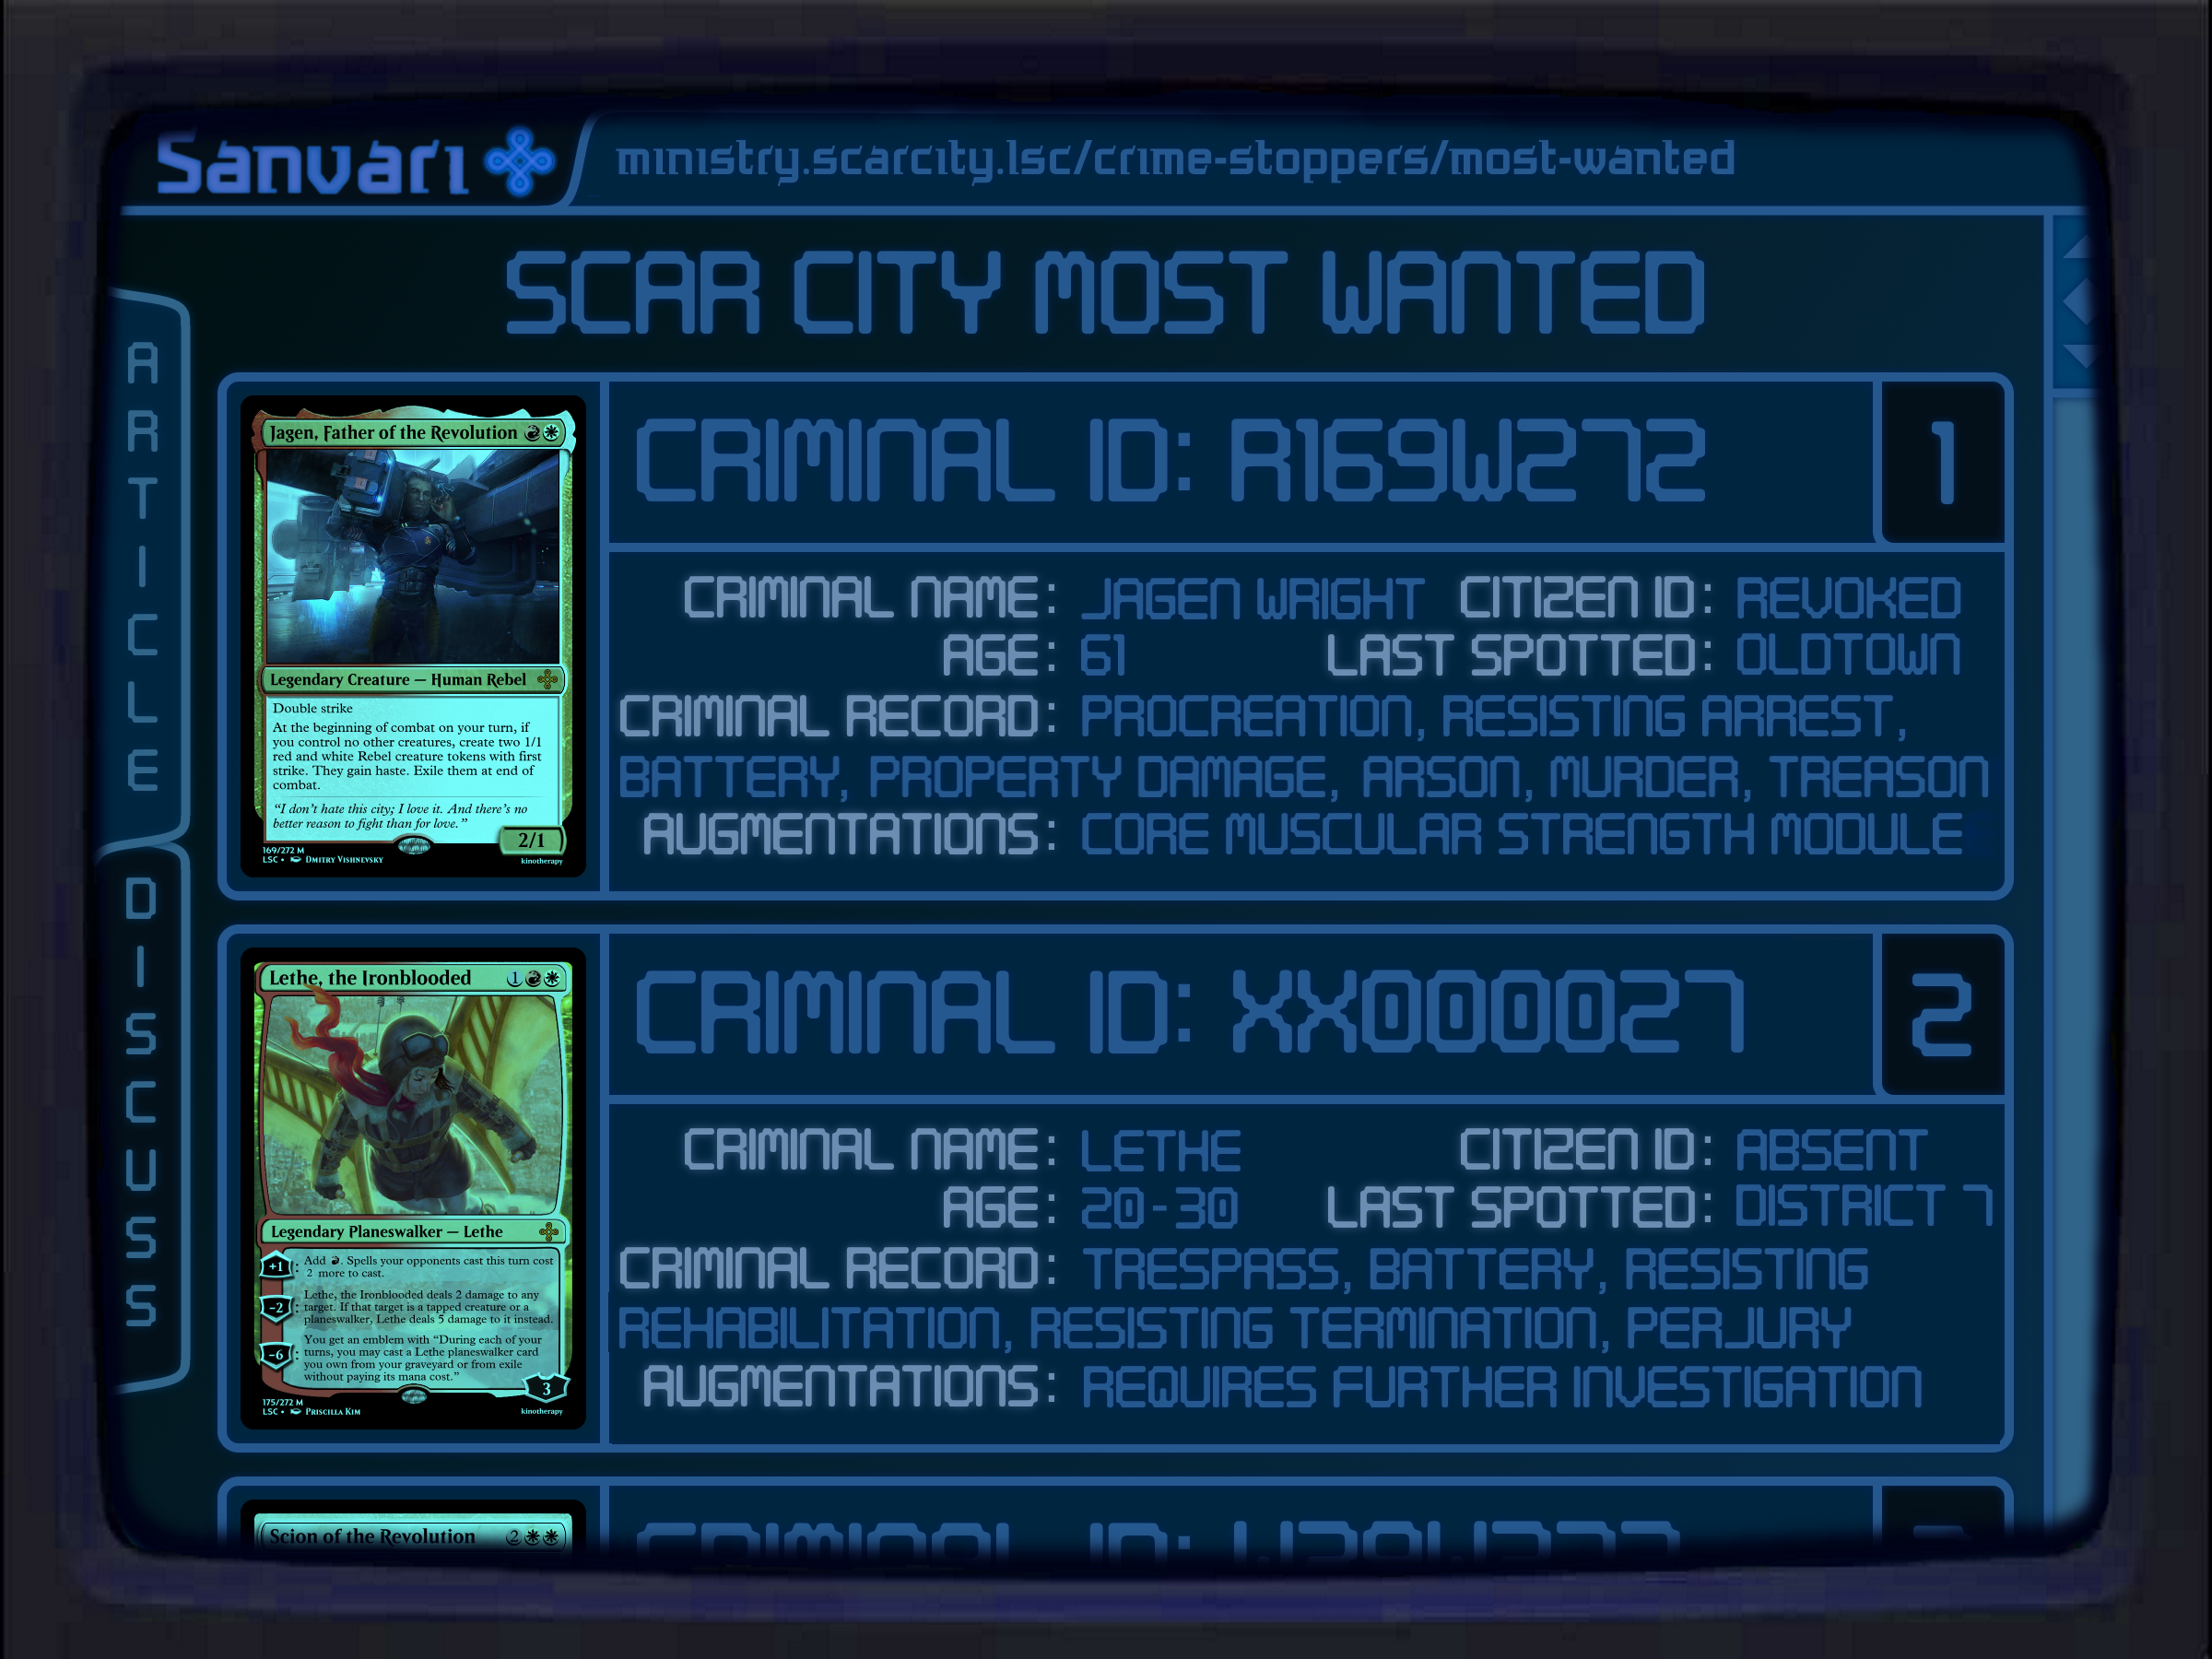 Scar City's Most Wanted